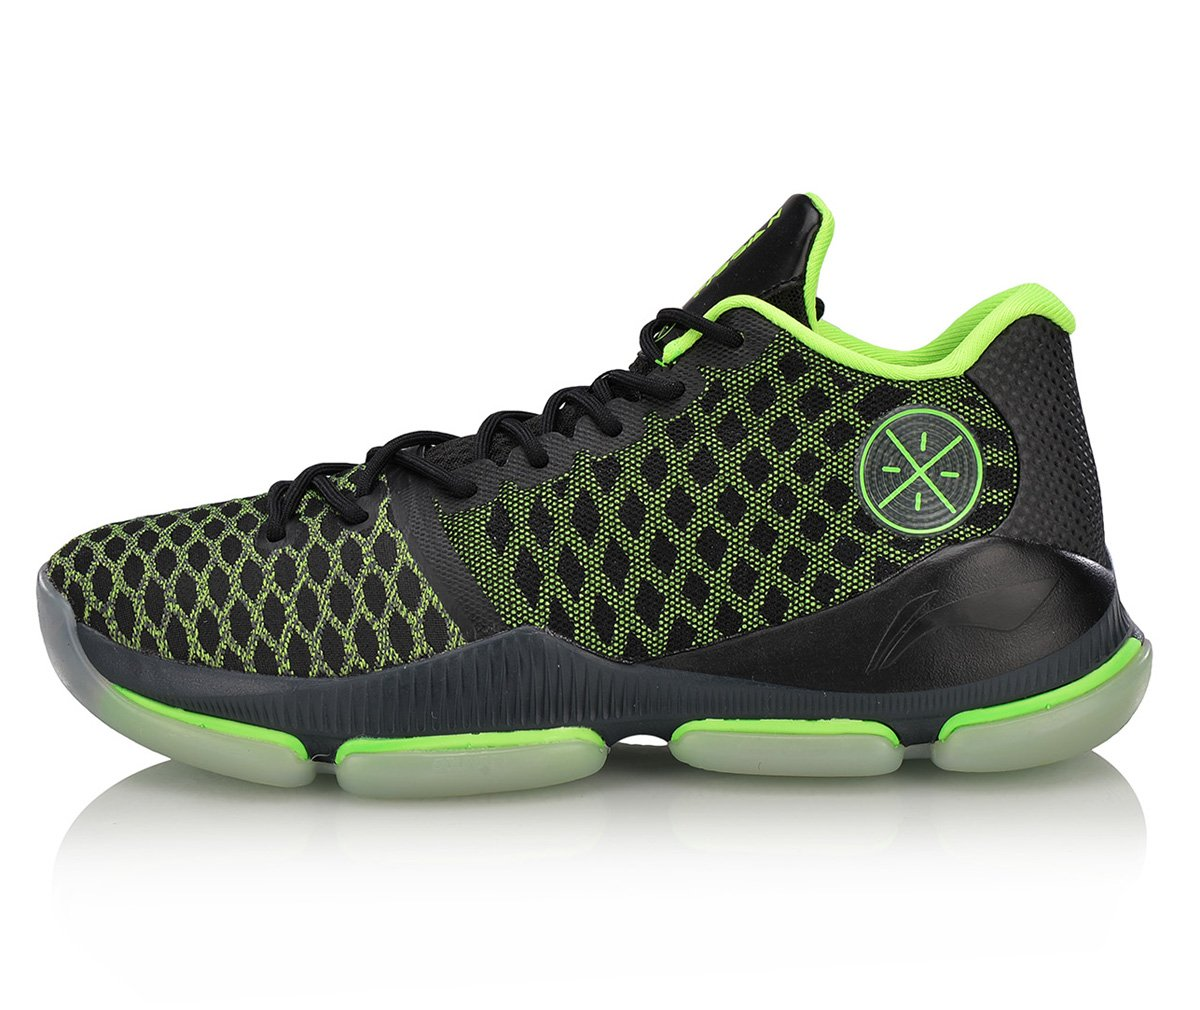 LI-NING Men Wade Fission III Professional Shock Absorption Basketball Shoes Air Wearable Stylish Sports Sneakers ABAN011 B07BV84JJY US 13 Foot Length 12.01 Inch Green